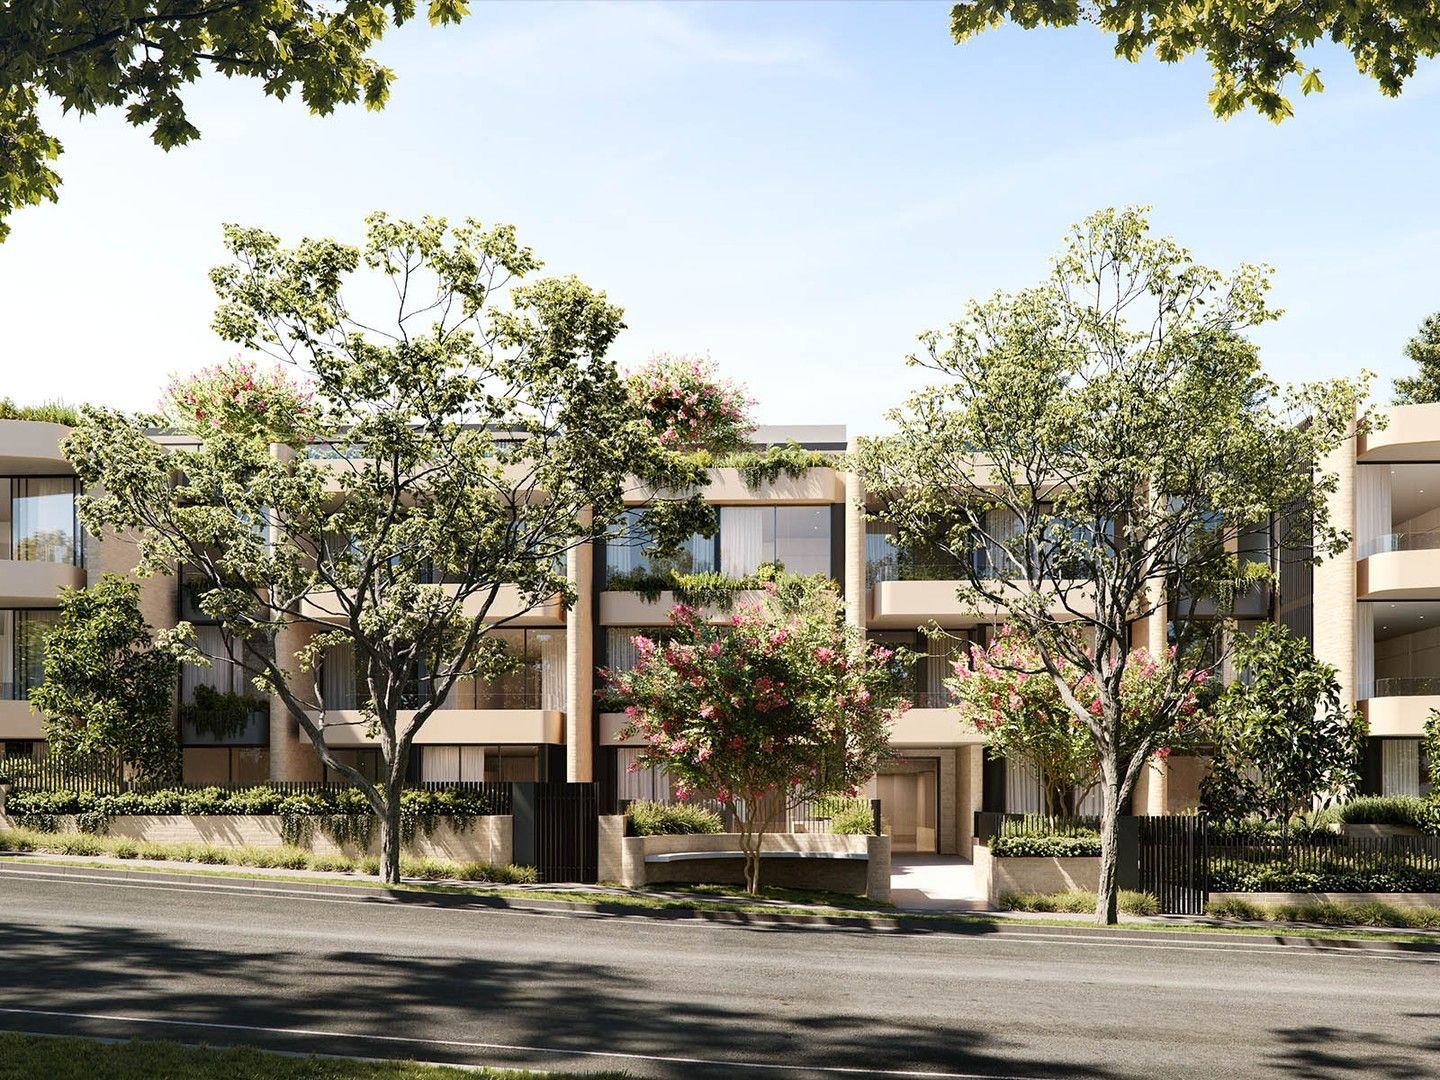 2 bedrooms New Apartments / Off the Plan in  CROWS NEST NSW, 2065